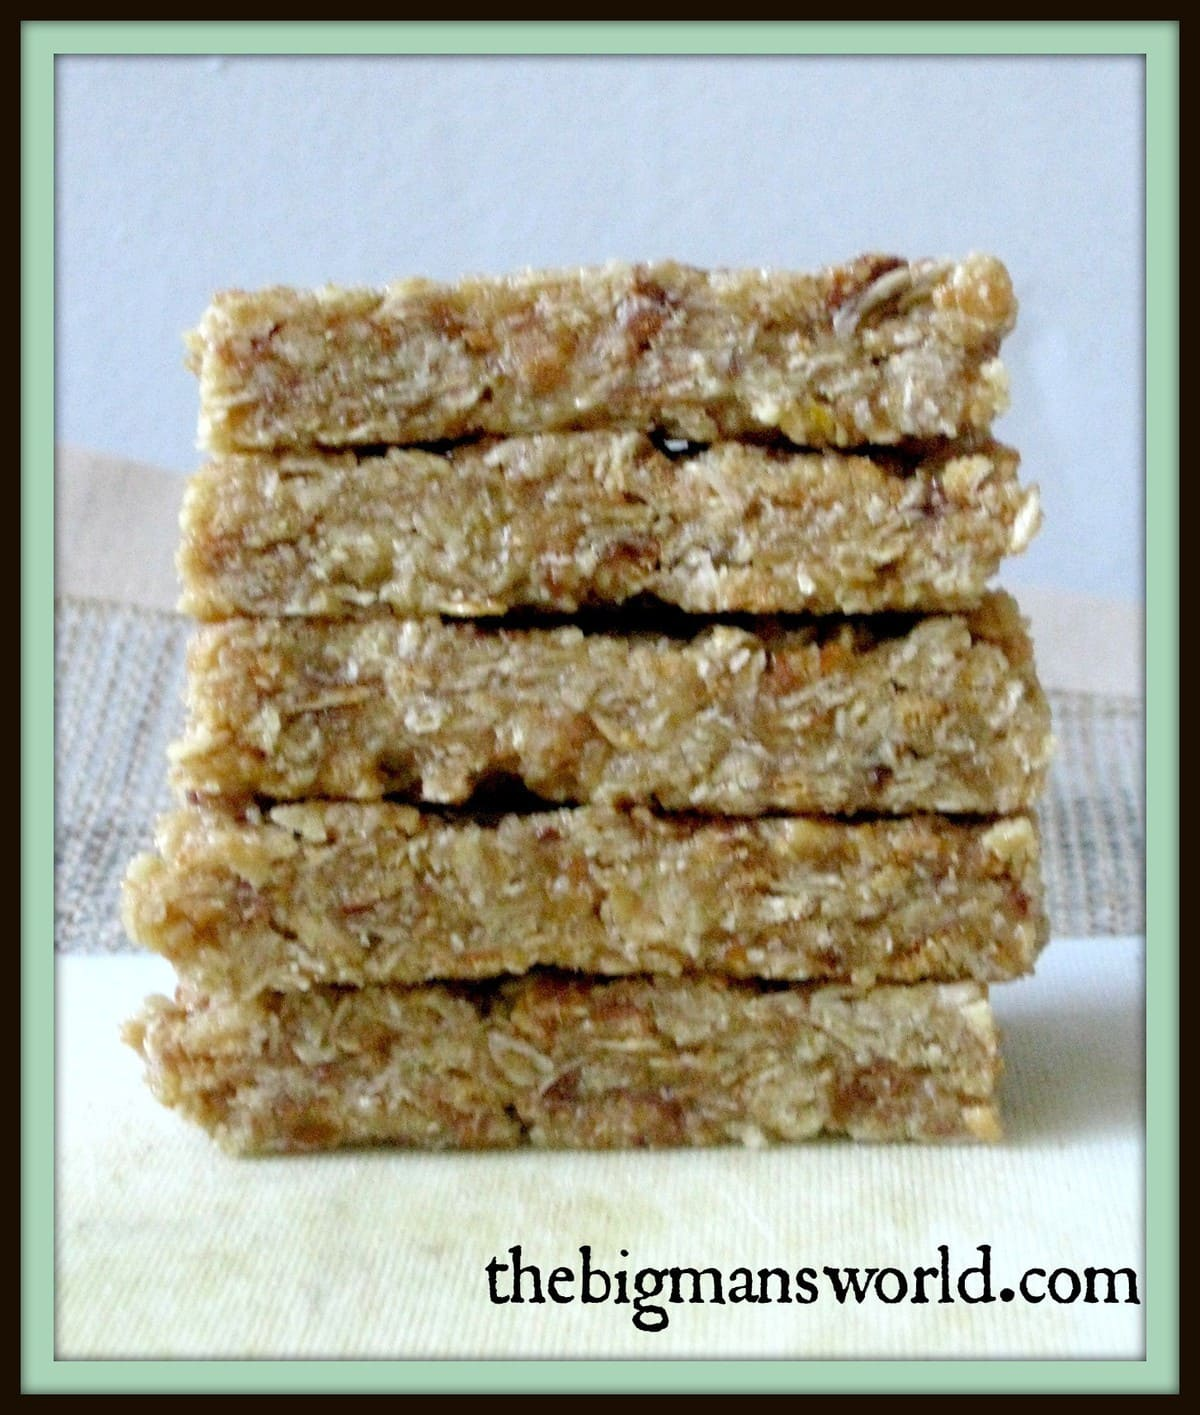 cashew cereal bars no bake blueberry bars no bake chocolate oat bars ...